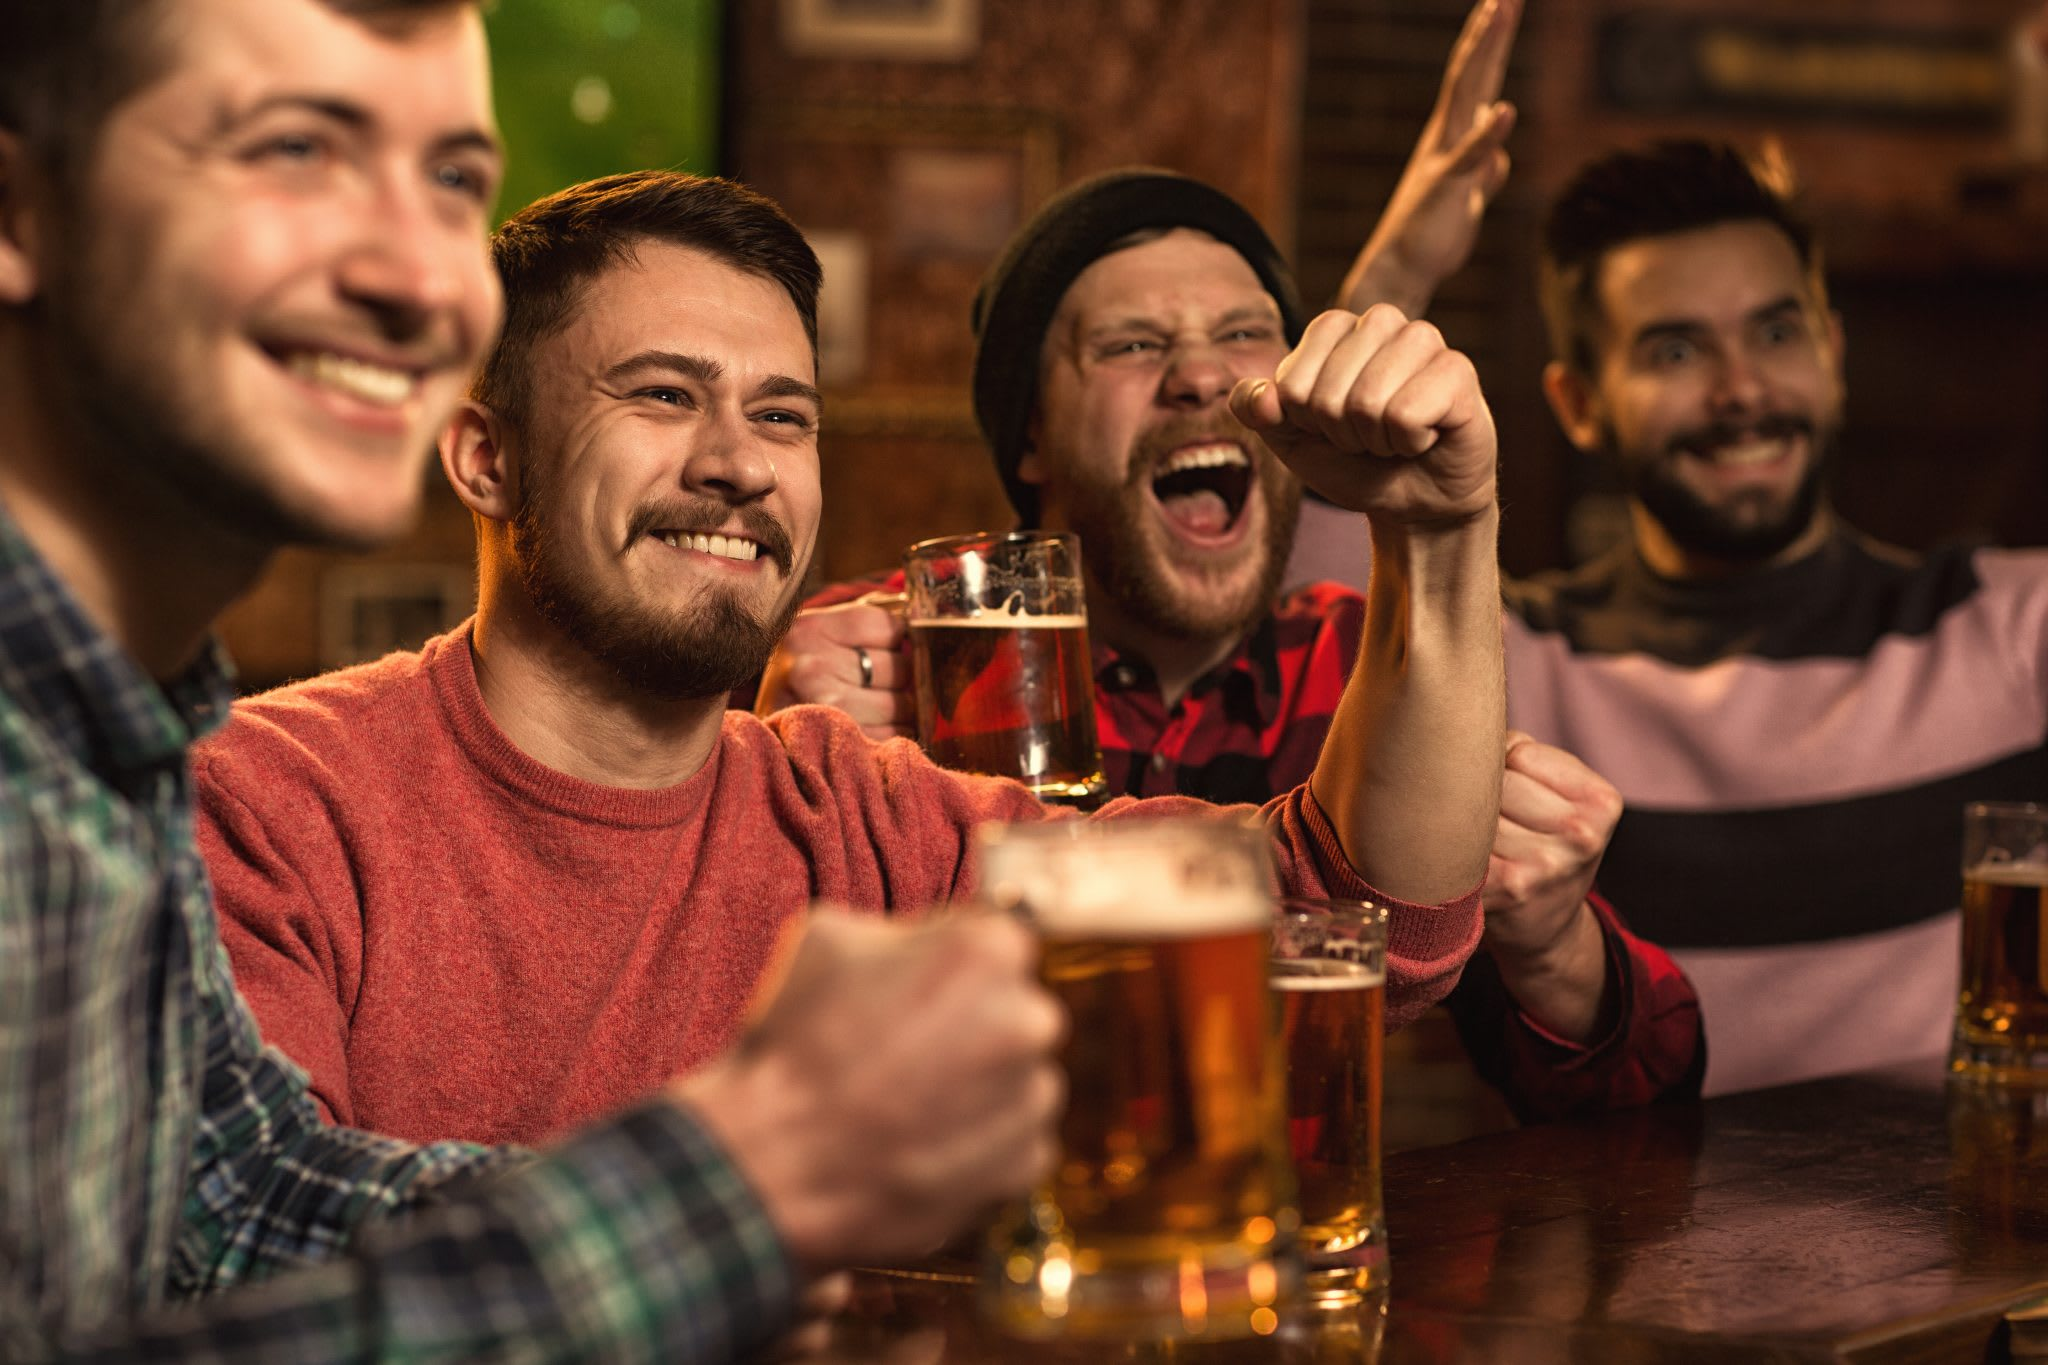 How to Drive Repeat Visits Through Entertainment (7 Ideas for Bars & Restaurants)